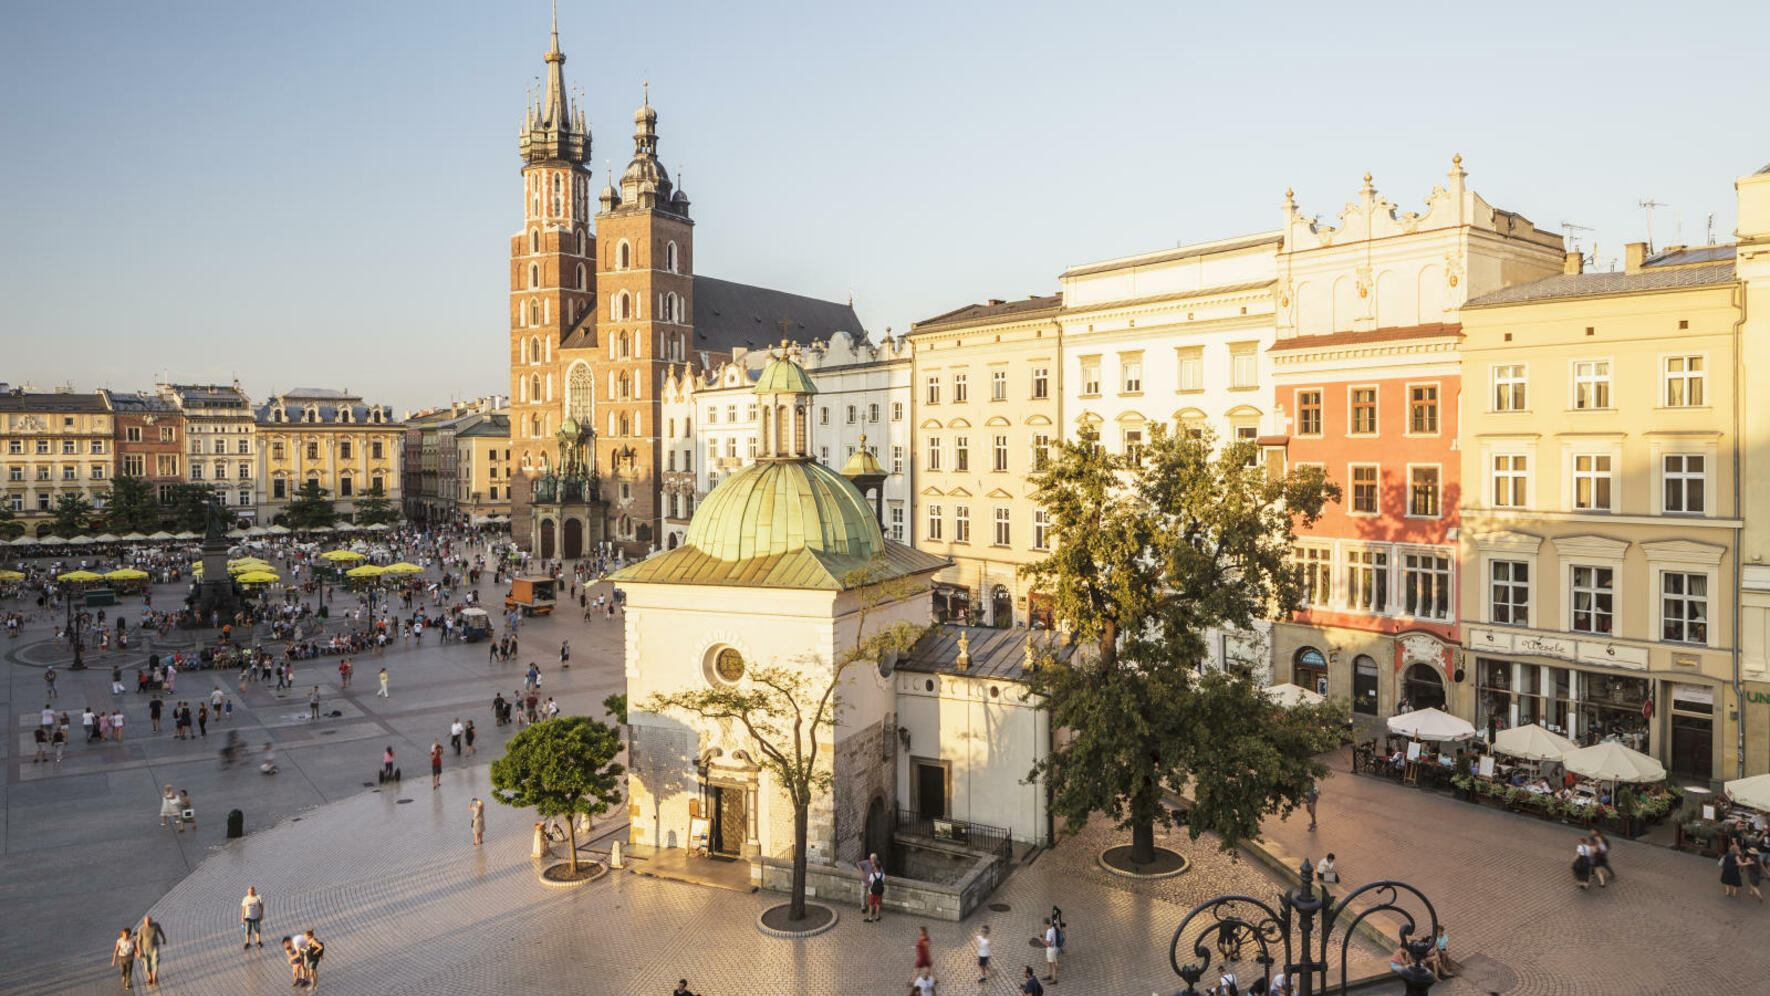 A brick gothic church, St Mary's basilica is in the main market square of Krakow. It was built in the 14th century and is one of the best examples of Polish Gothic architecture.